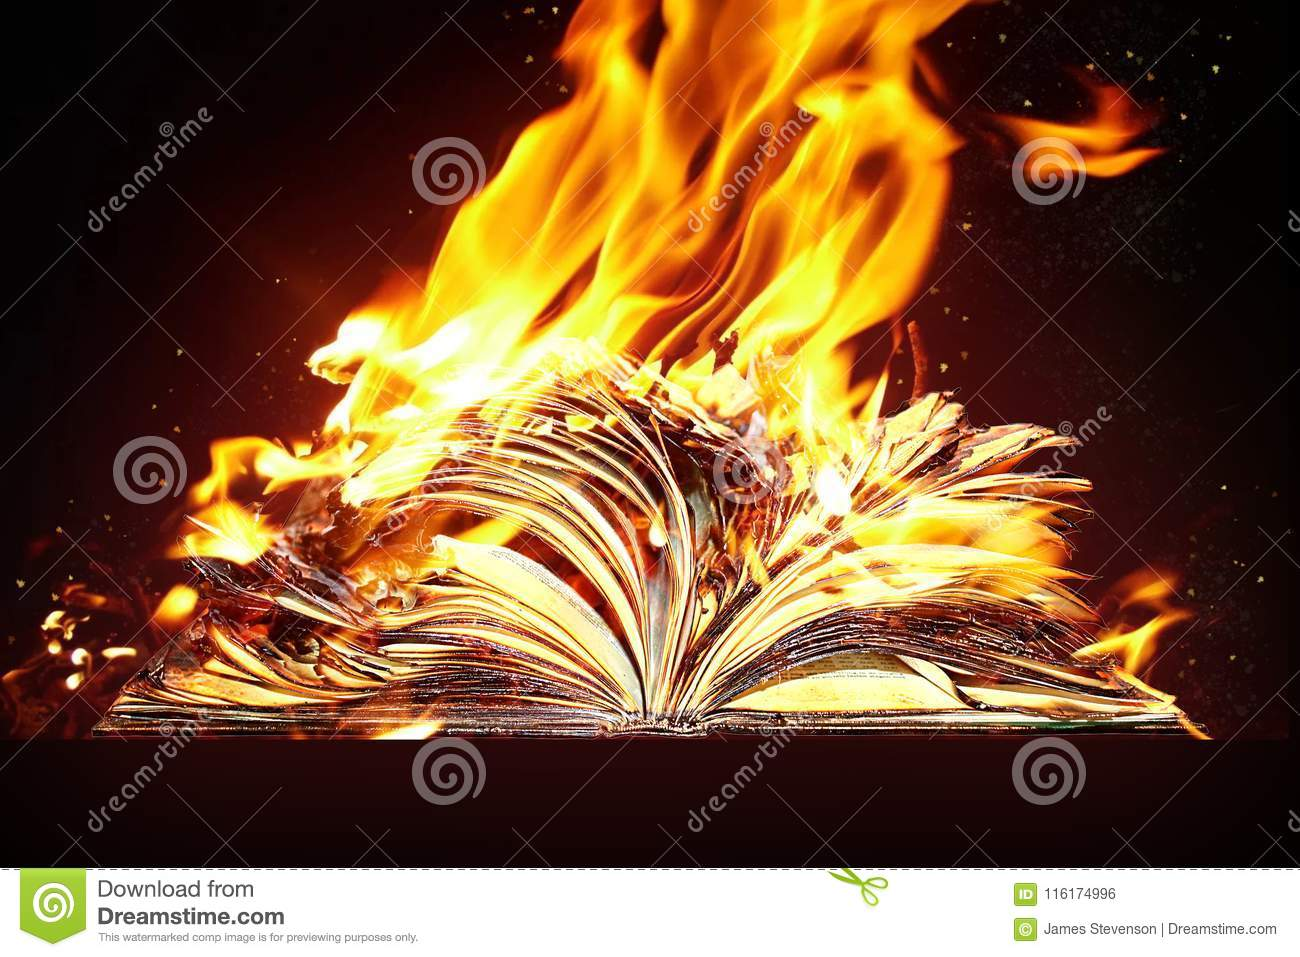 Burned book and fire.